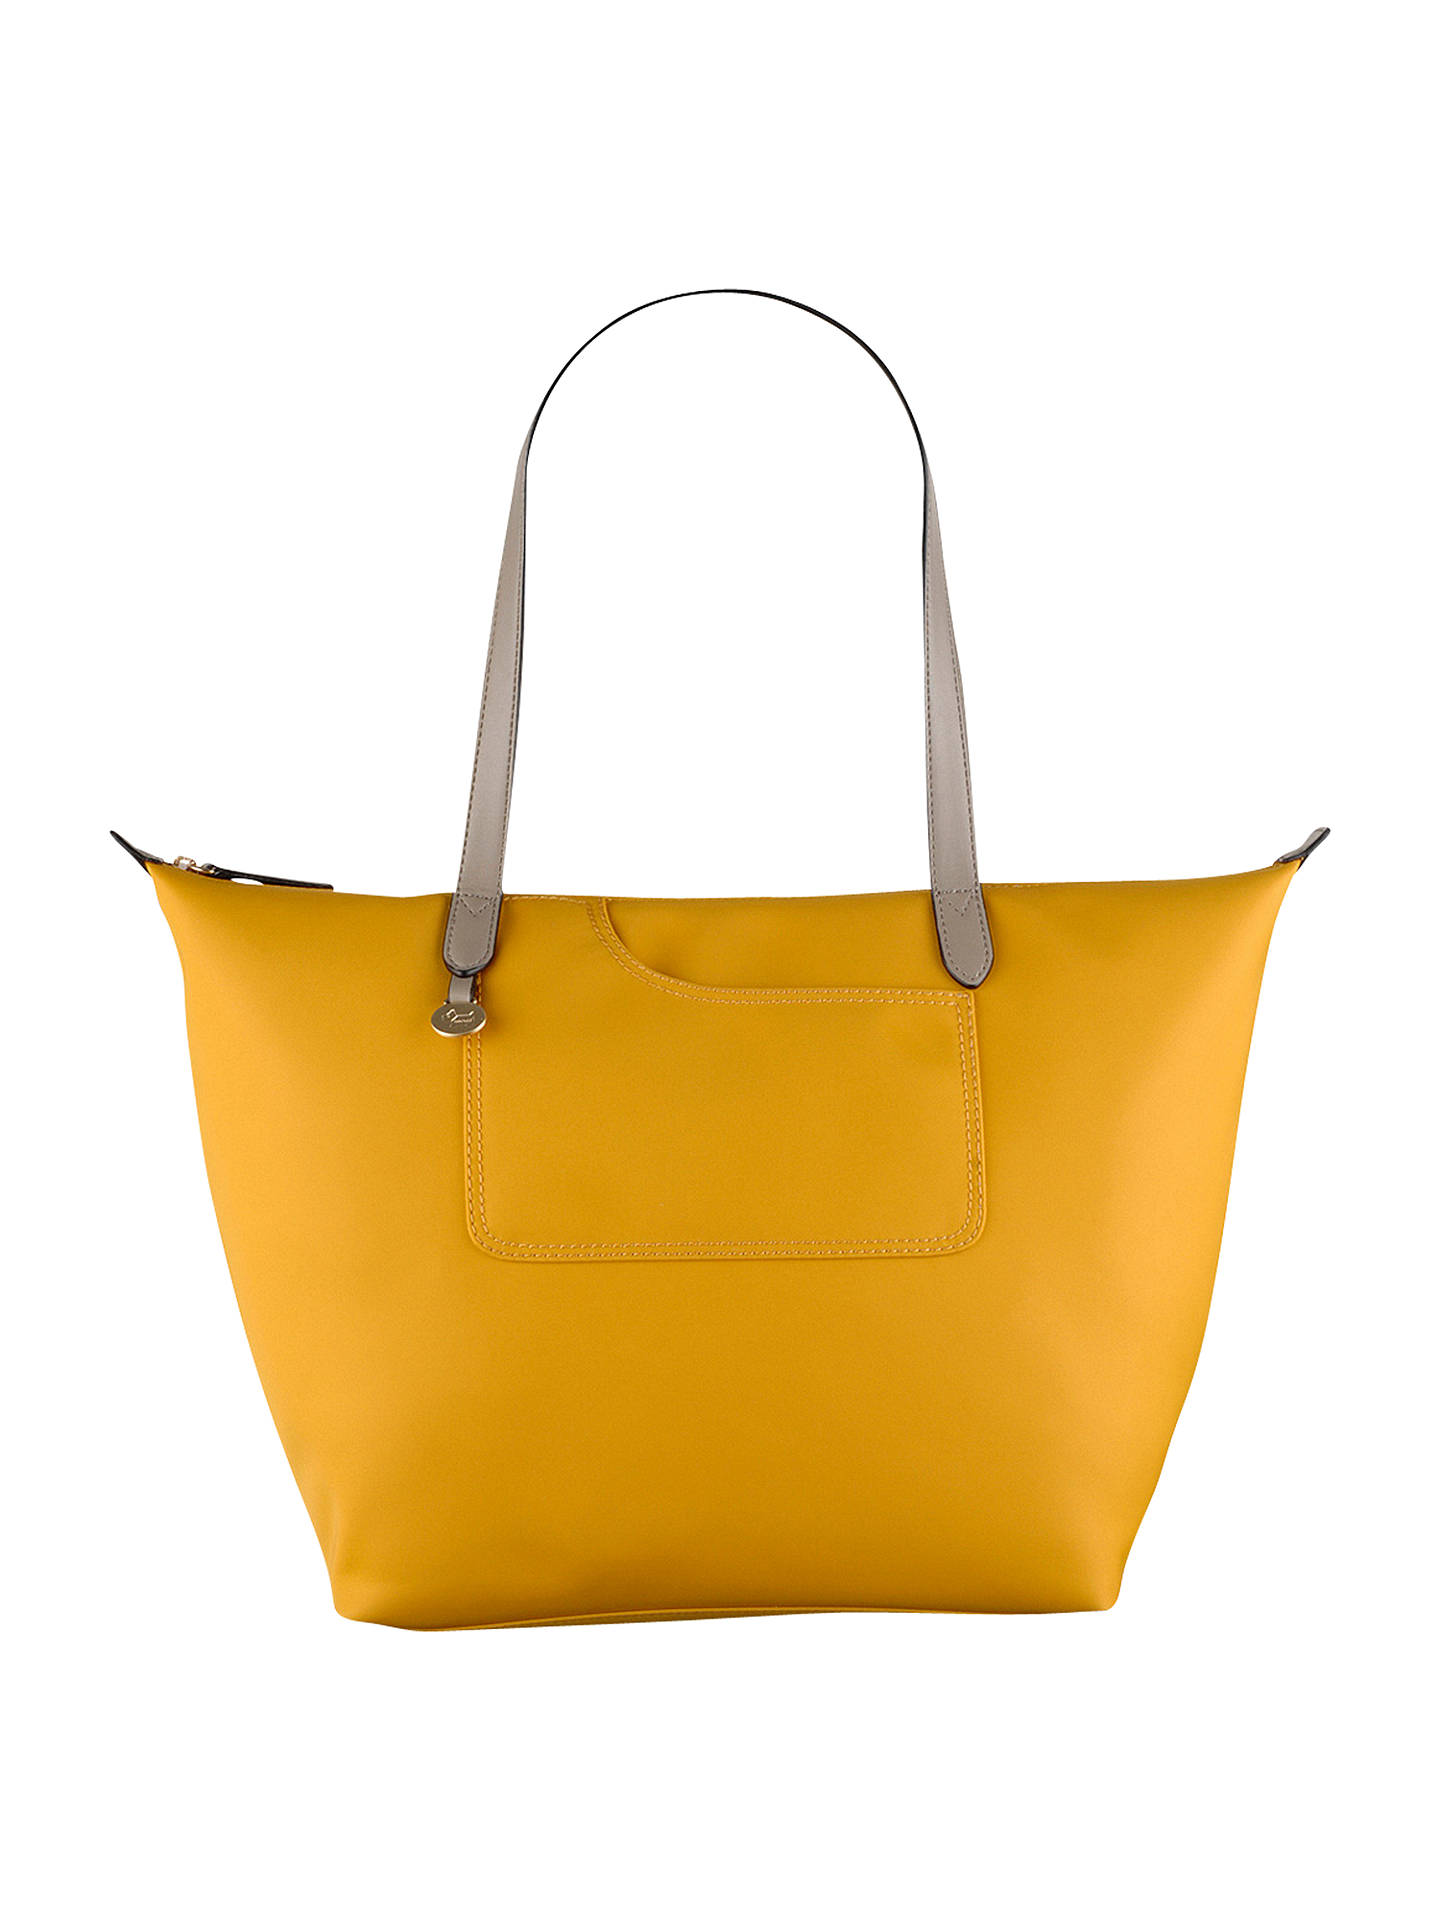 Radley Pocket Essentials Large Zip Top Tote Bag Daffodil Online At Johnlewis